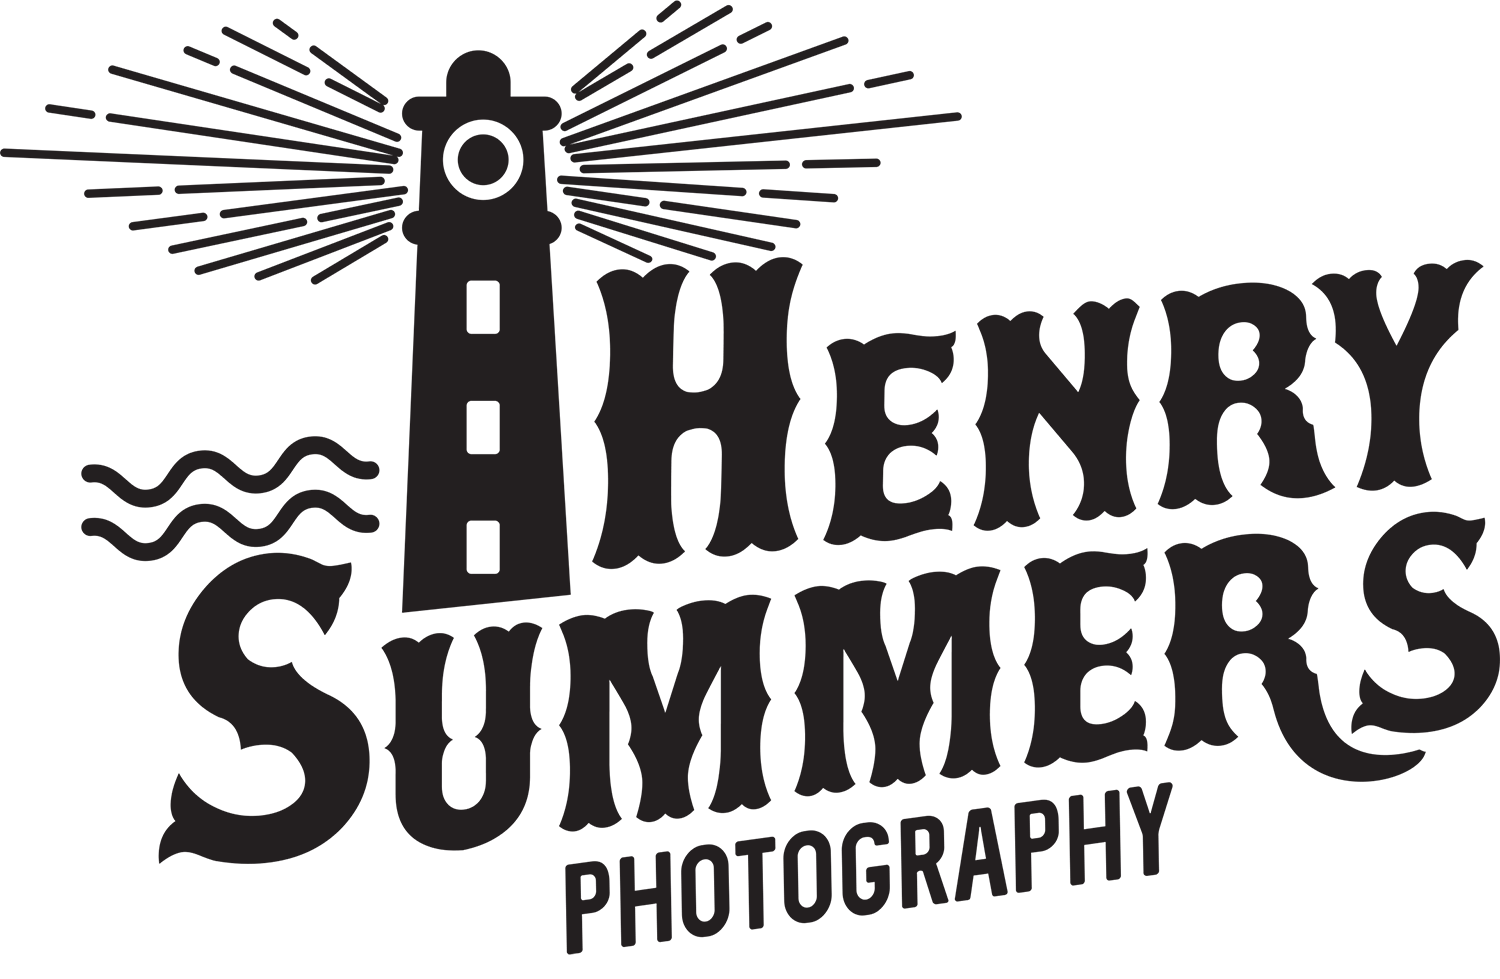 henry-summers-logo